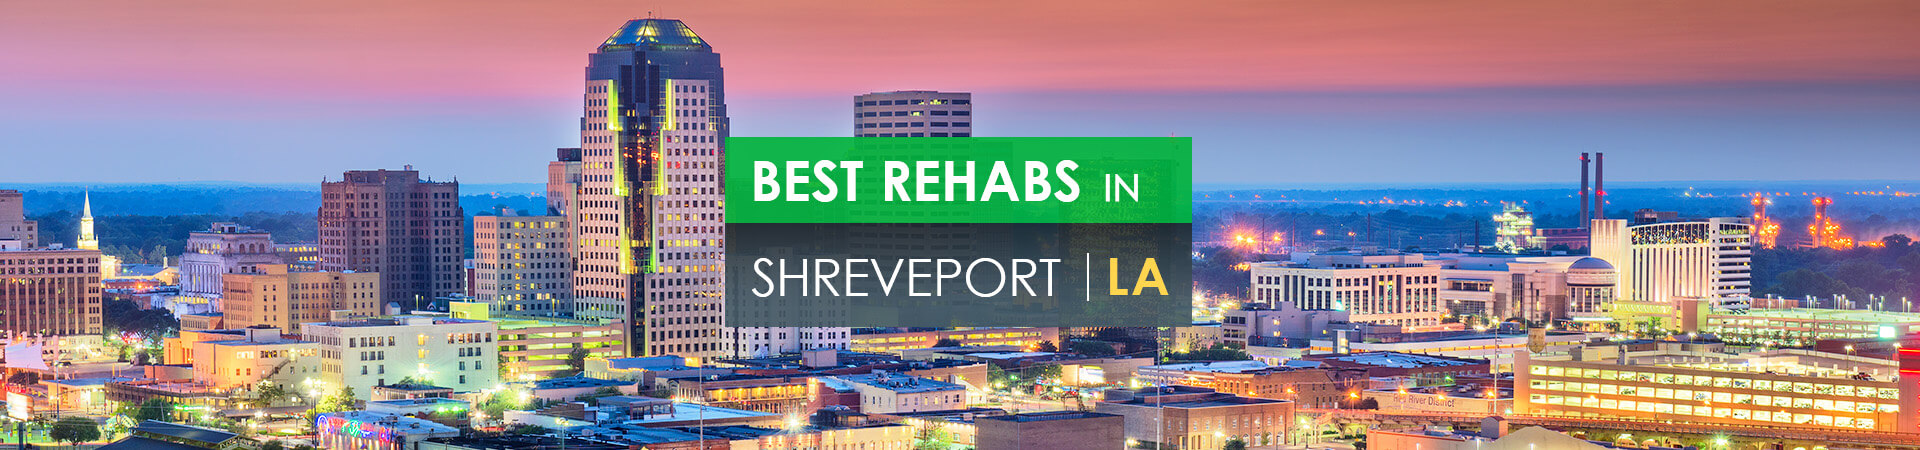 Best rehabs in Shreveport, LA